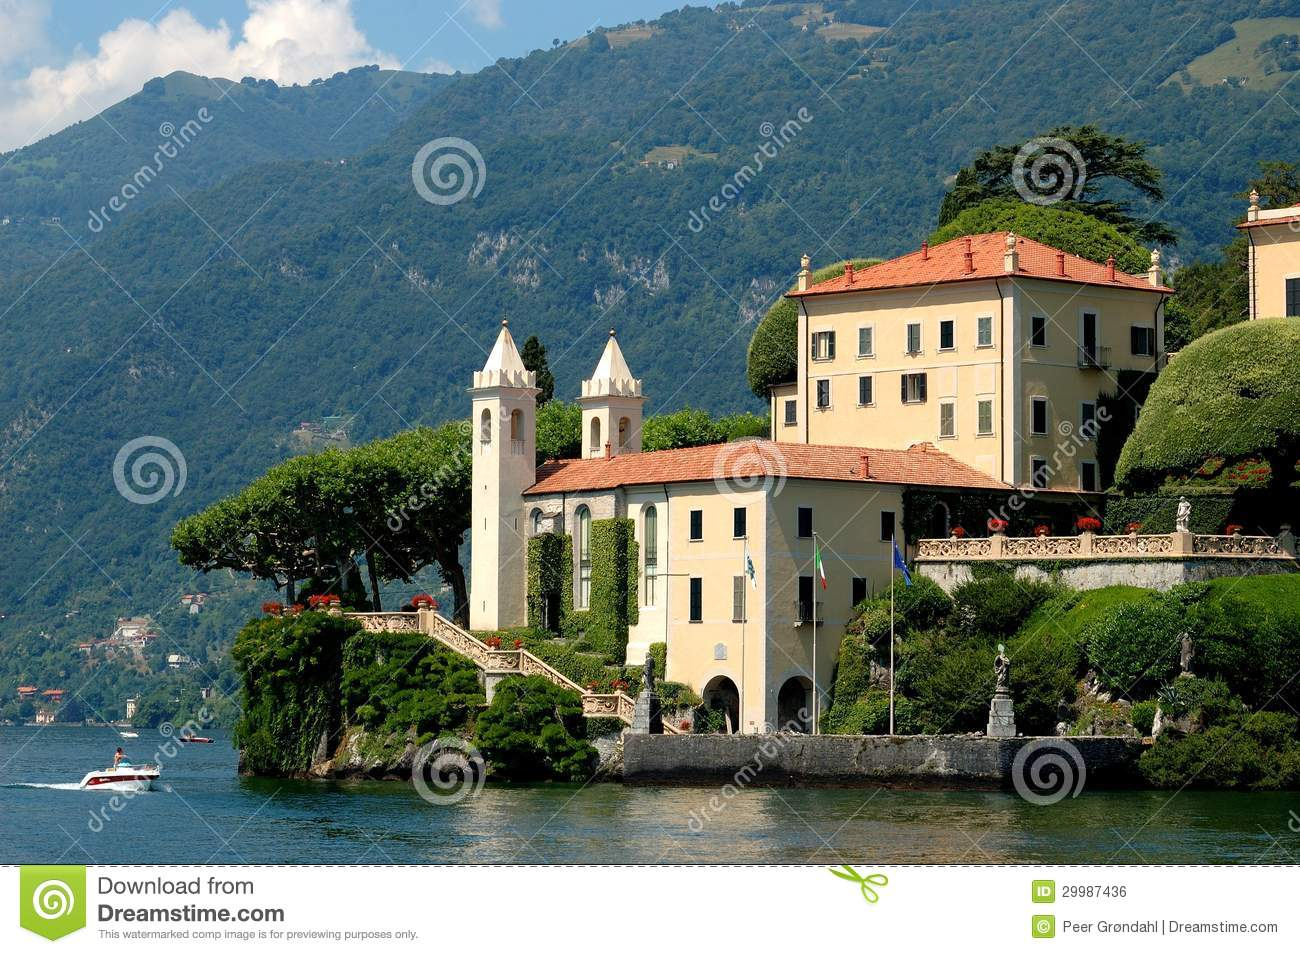 Villa balbianello royalty free stock image image 29987436 for Villa royale